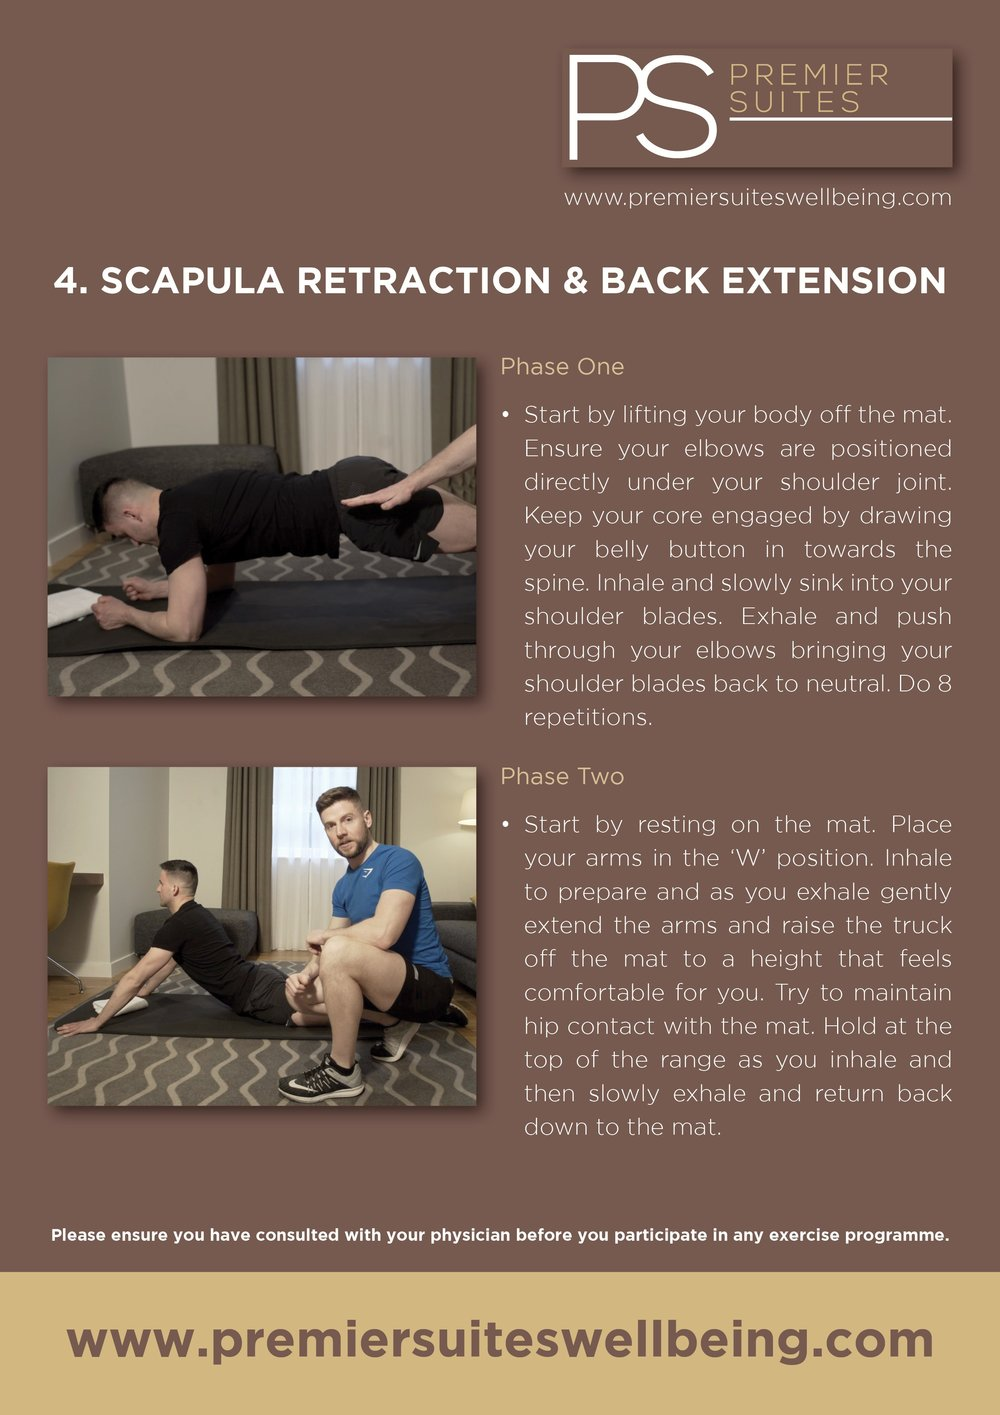 Scapula Extension